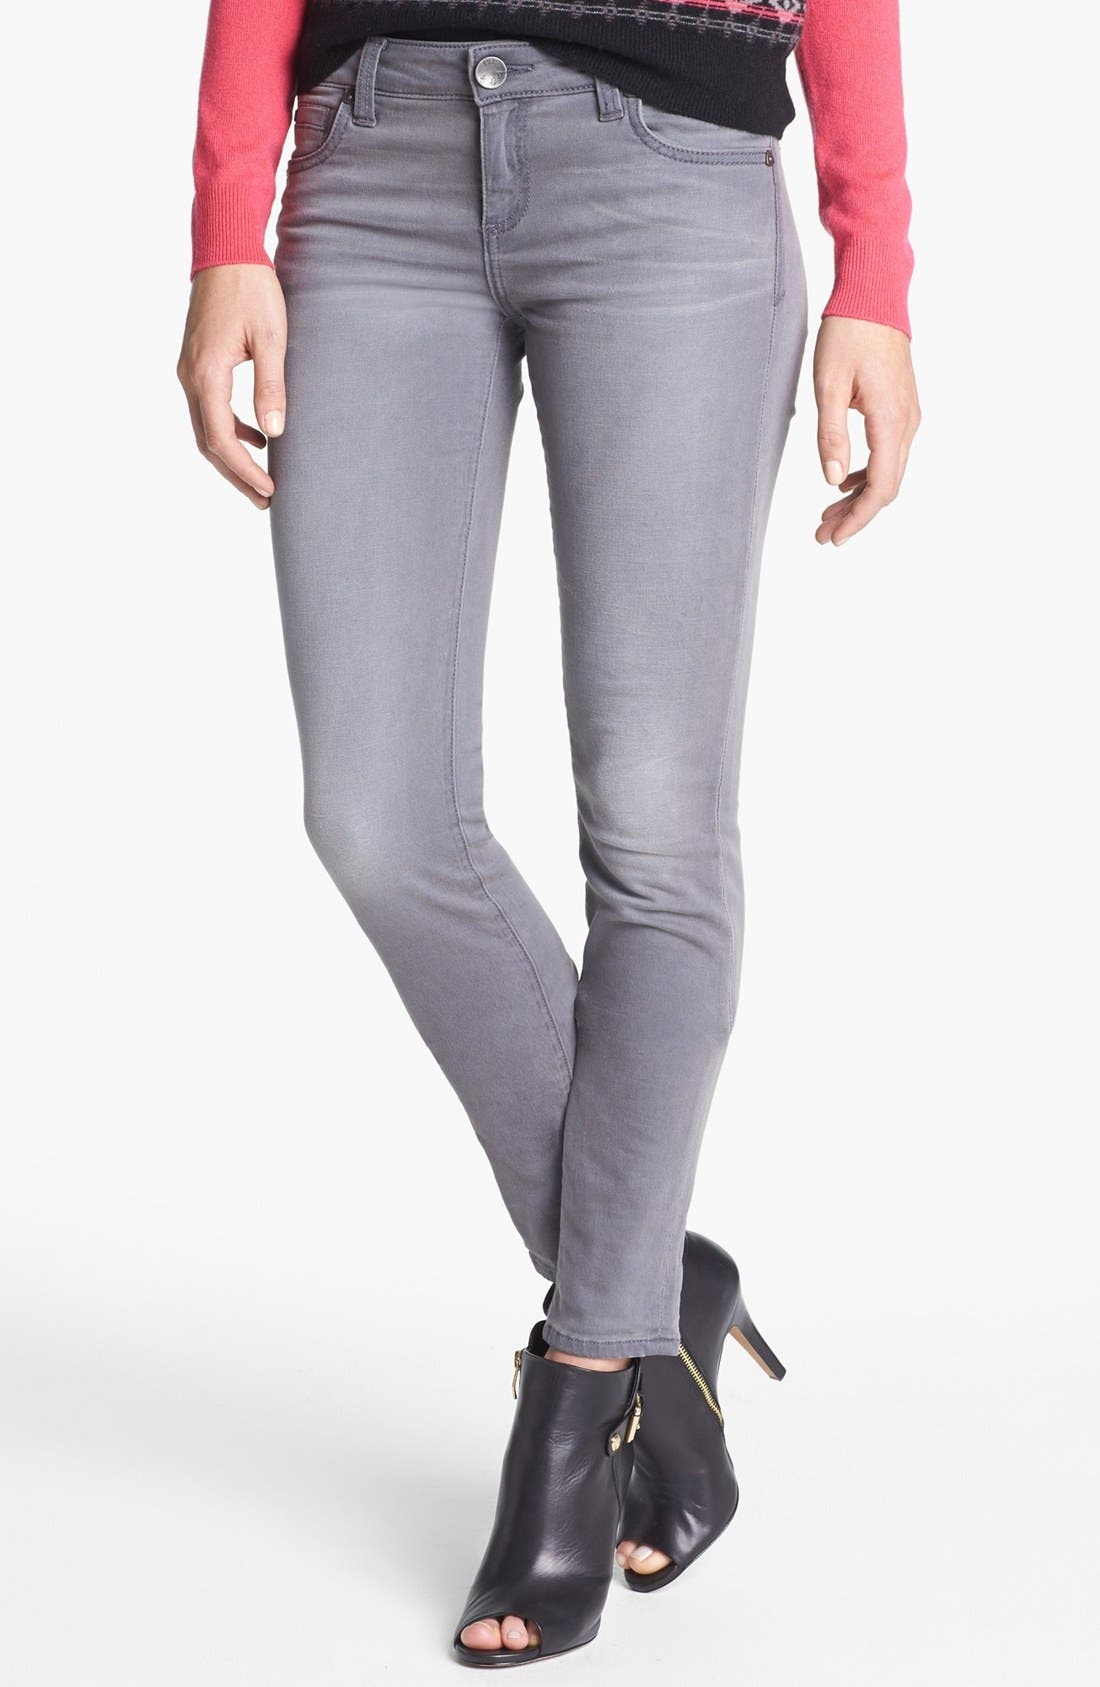 Main Image - KUT from the Kloth 'Mia' Skinny Jeans (Grey)